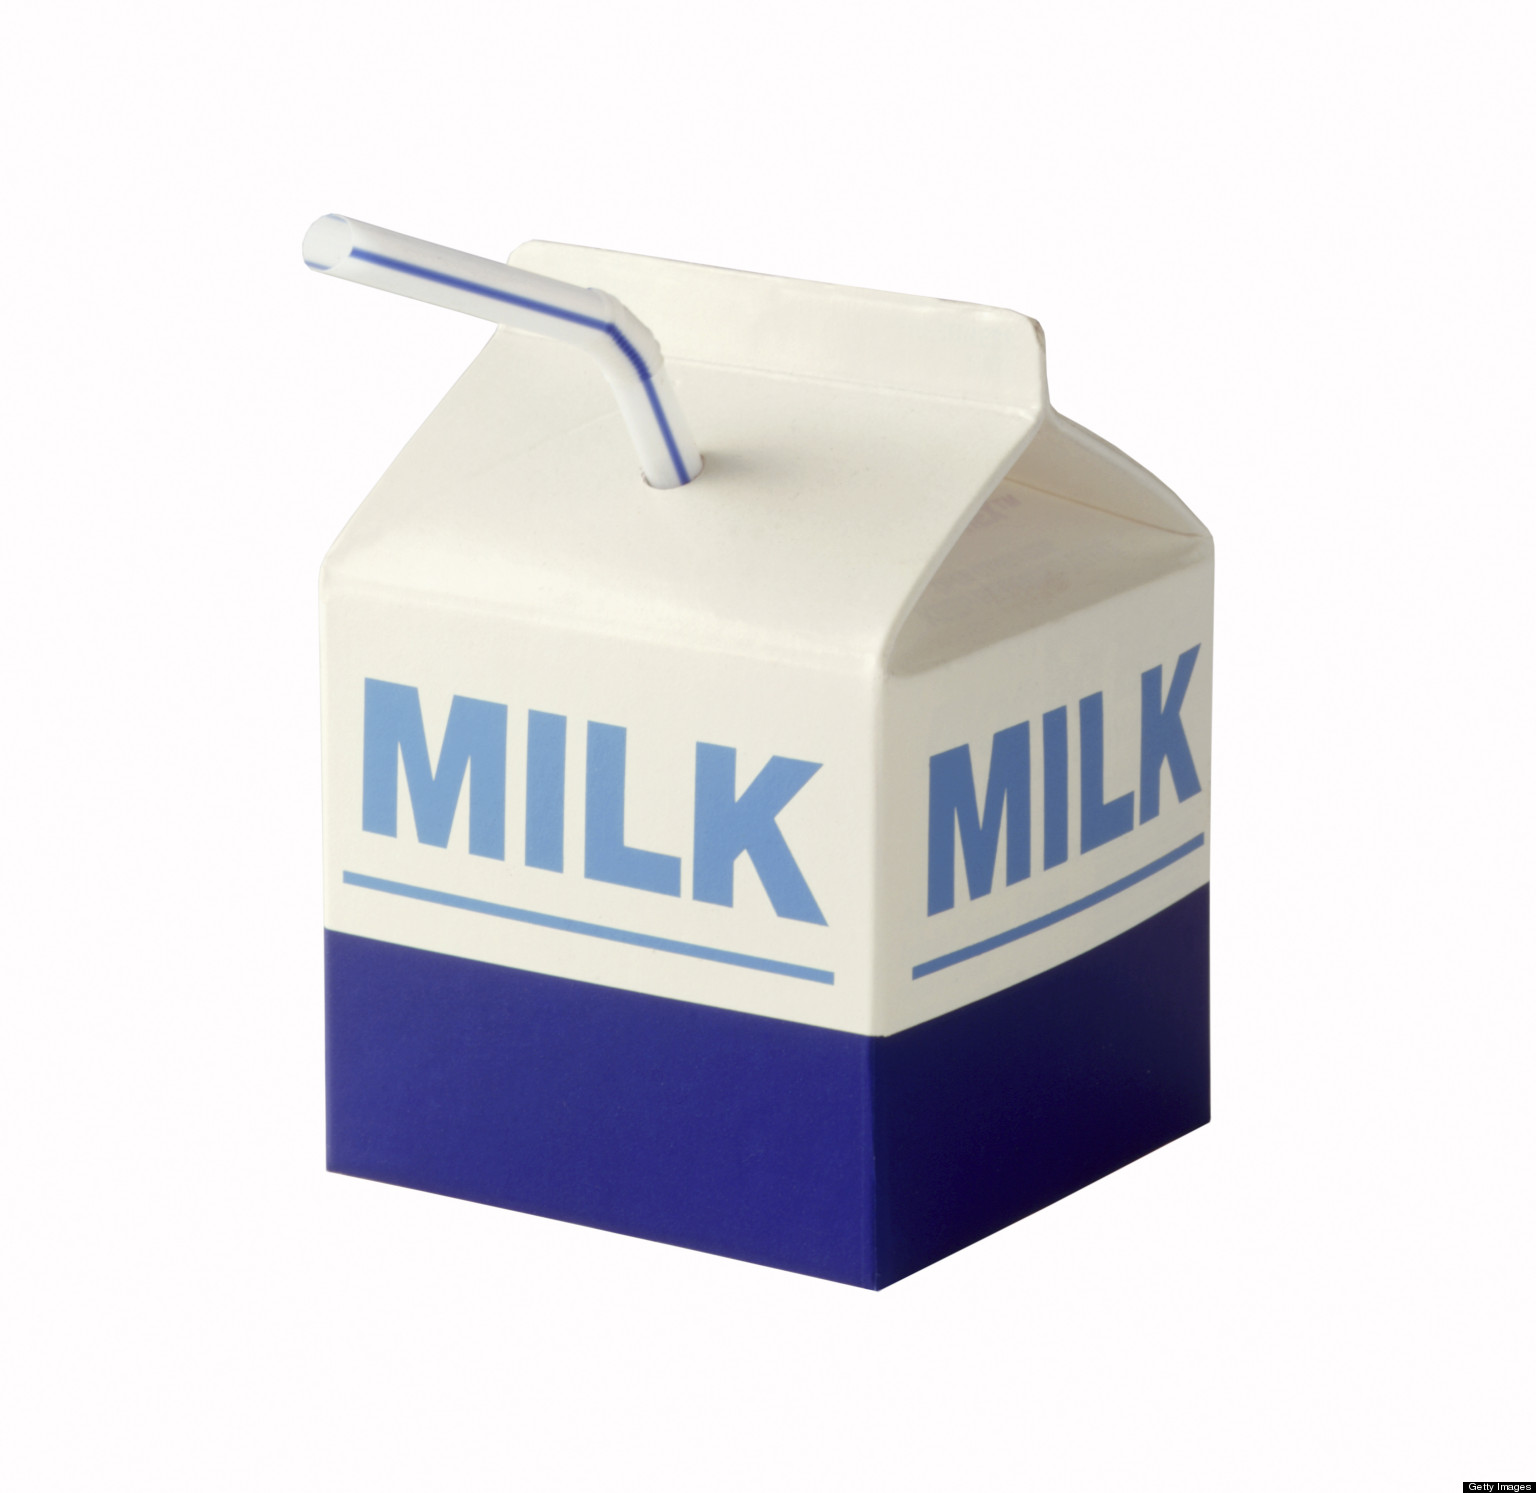 Milk container. (FIle Photo)